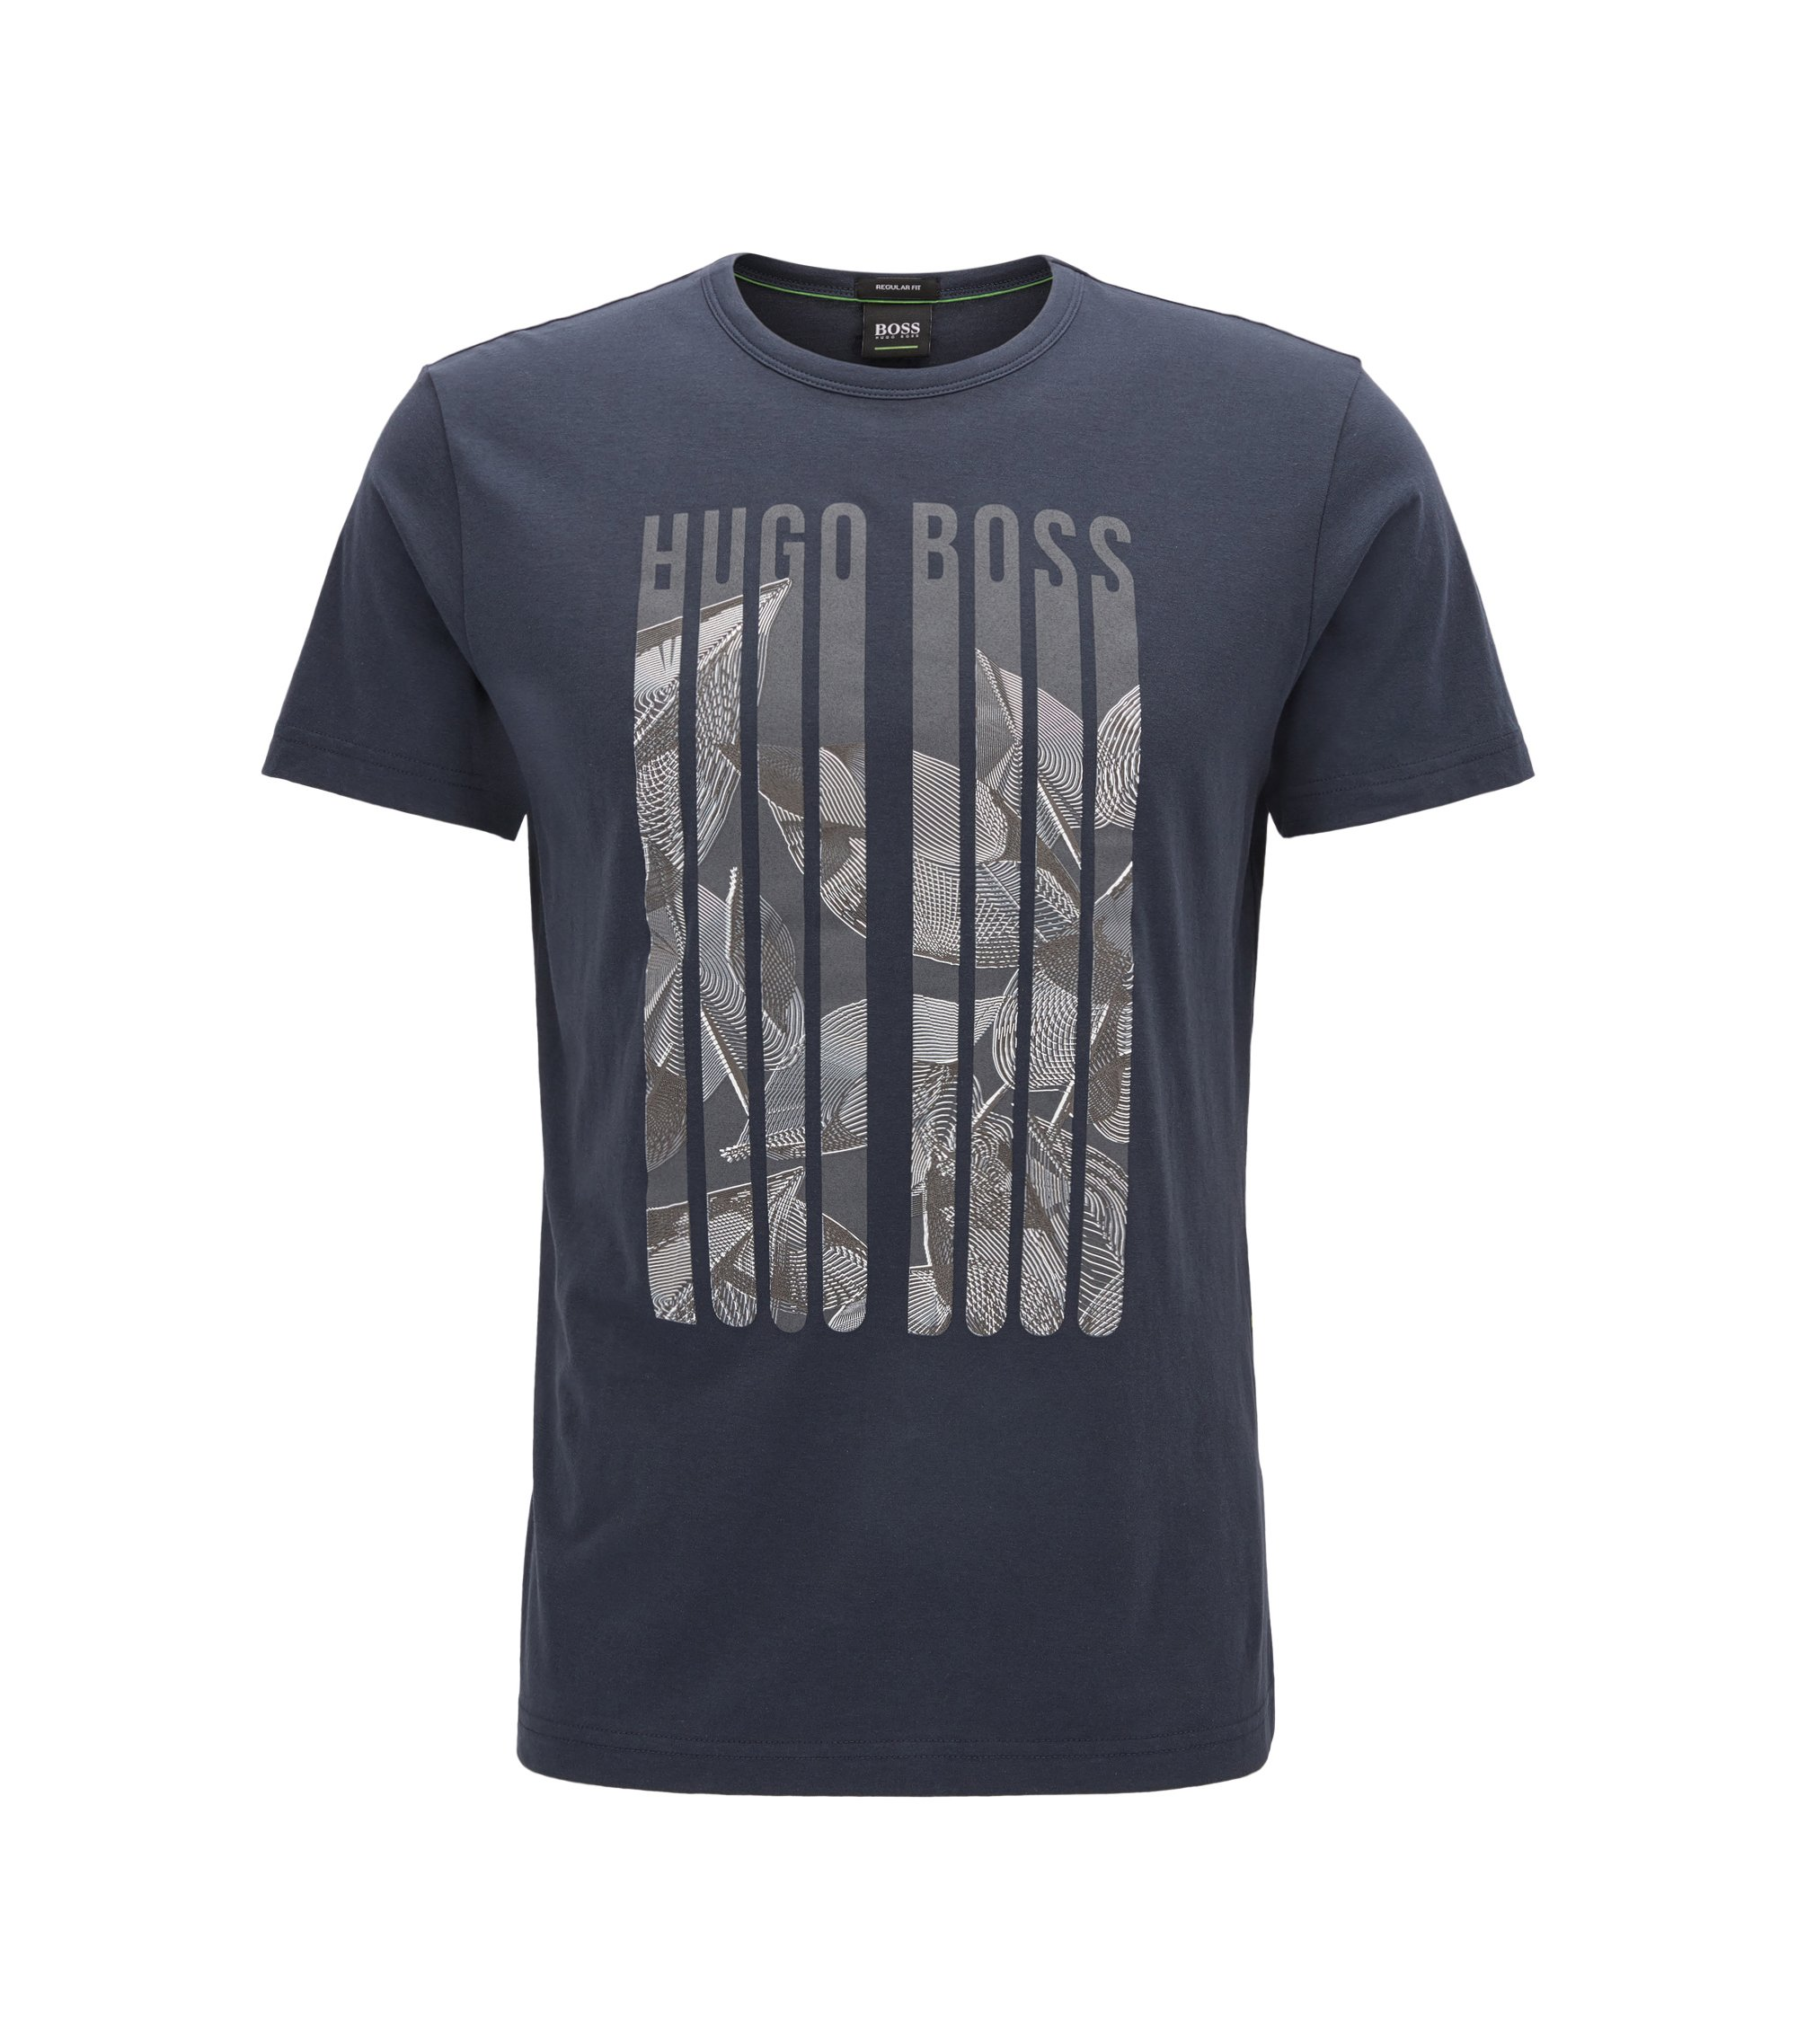 T-shirt regular fit in jersey con stampa grafica, Blu scuro